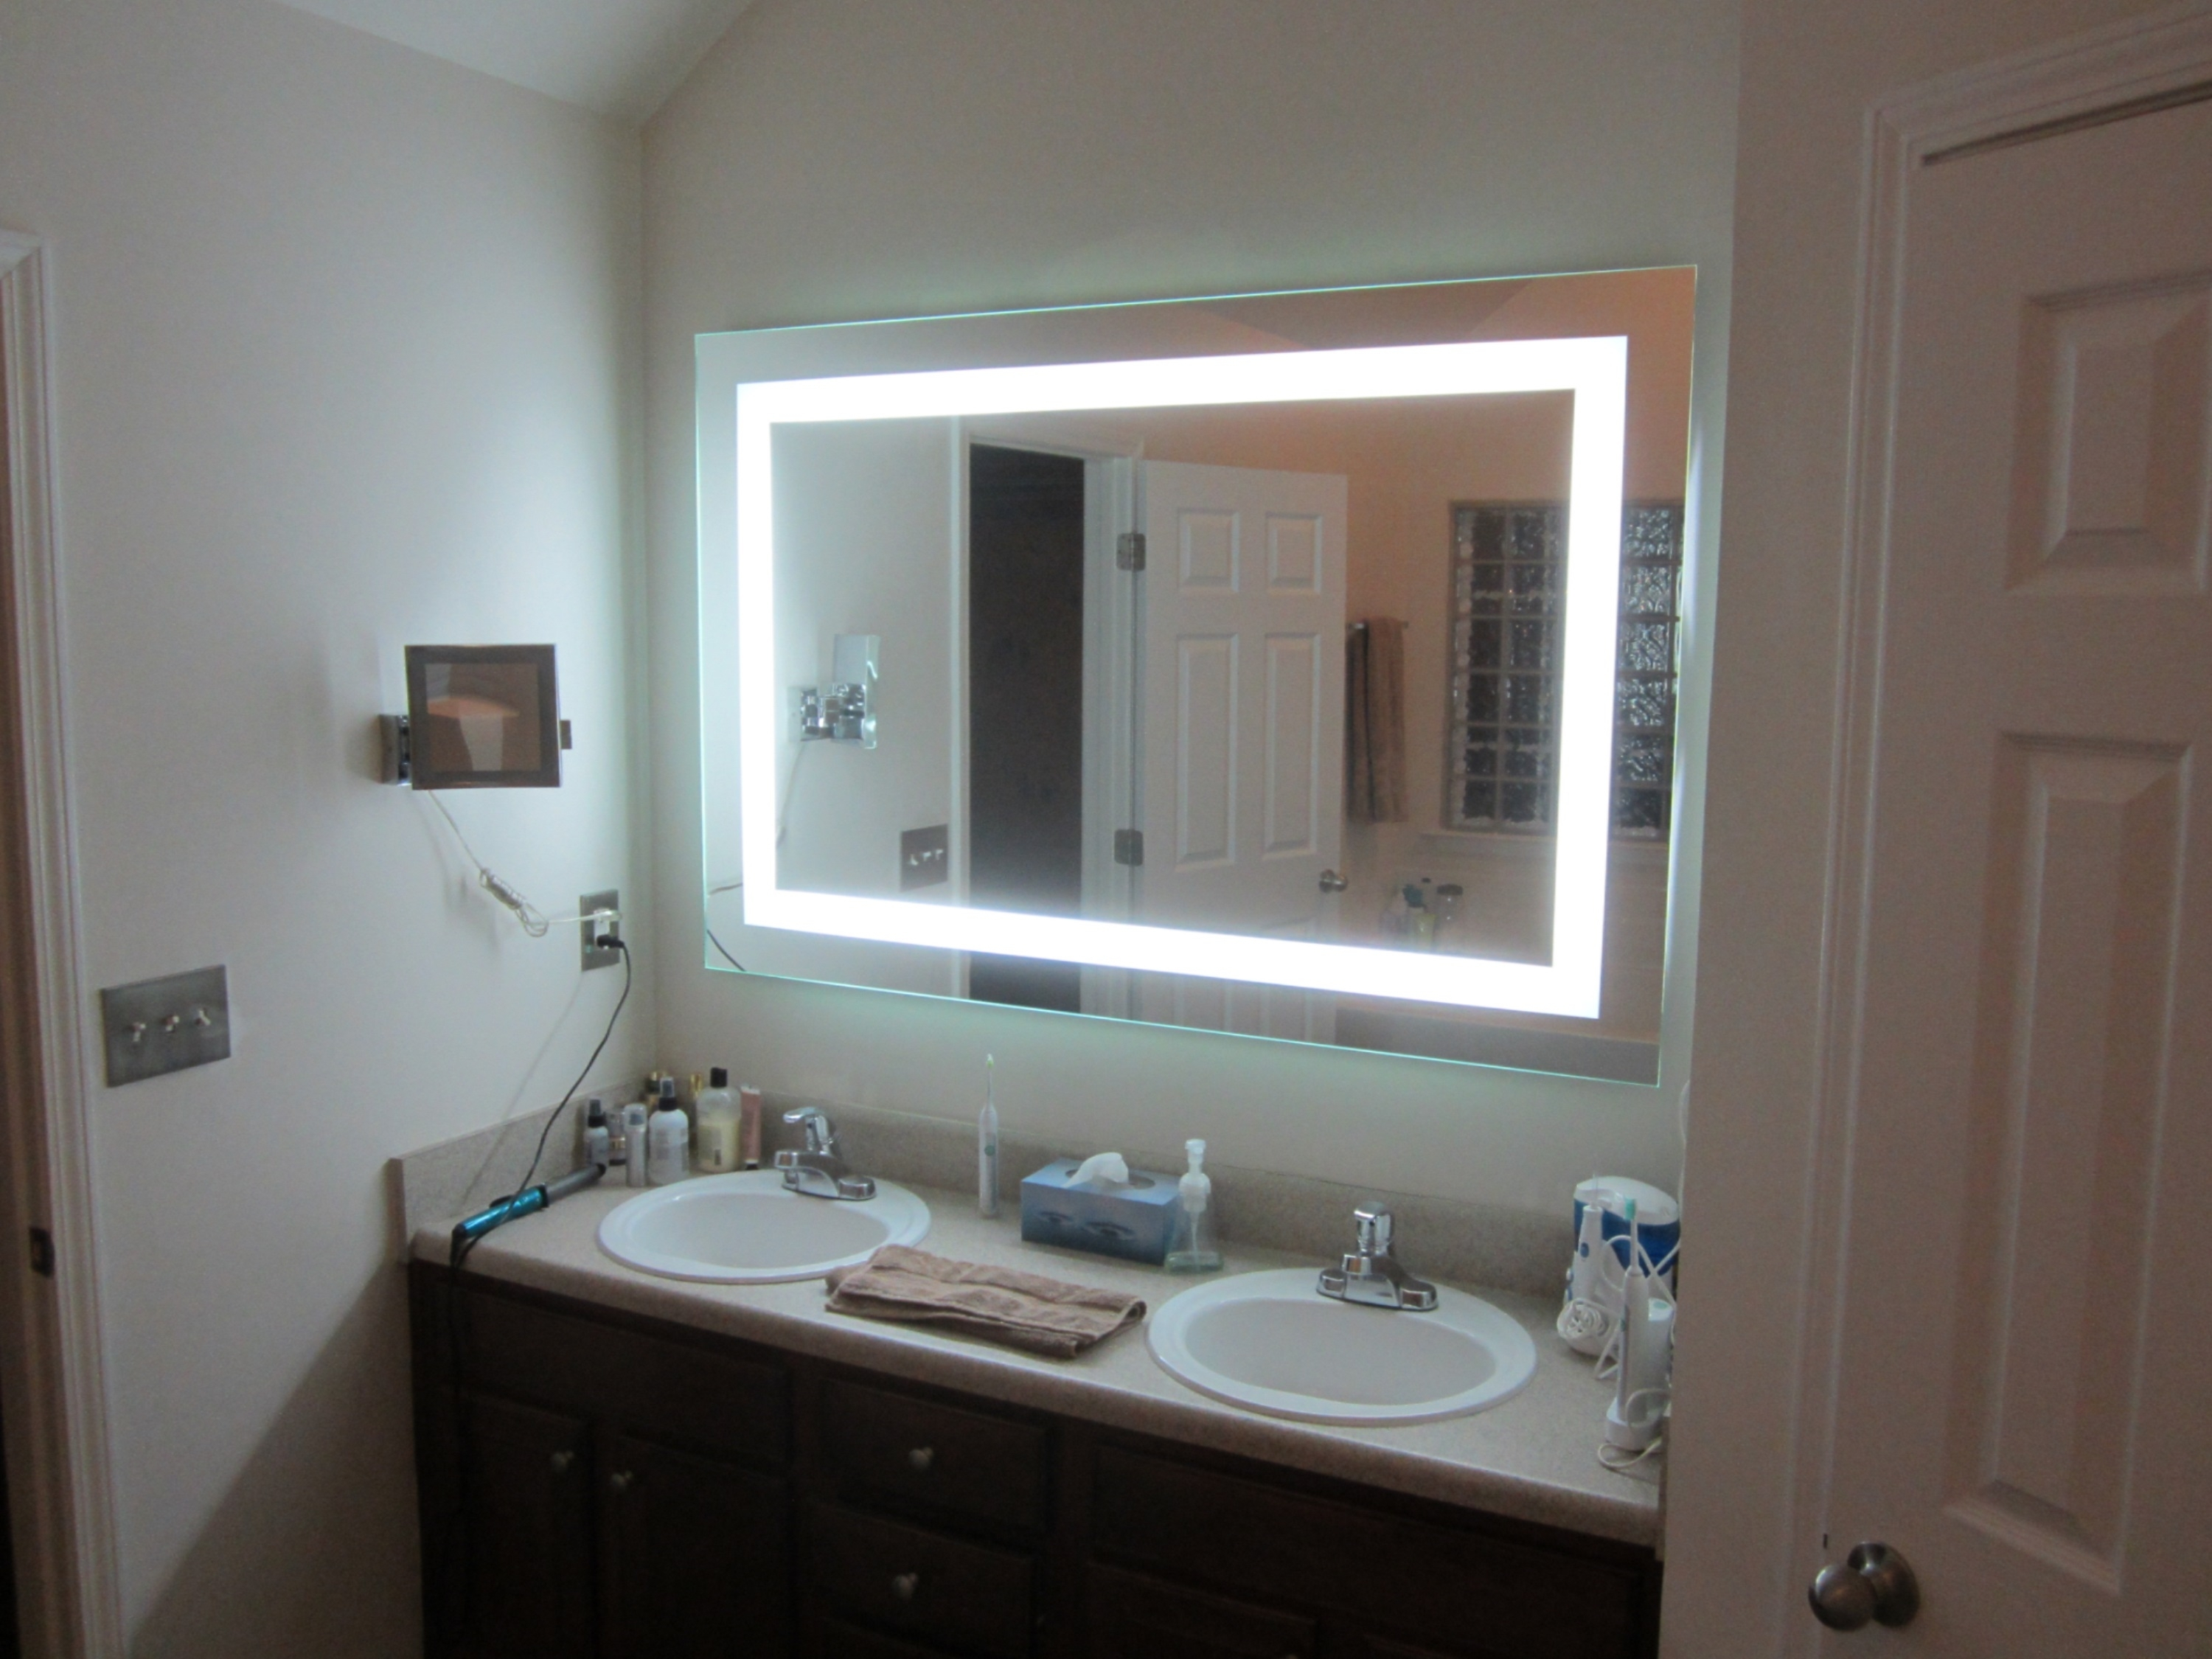 Conair Wall Mounted Lighted Makeup Mirror